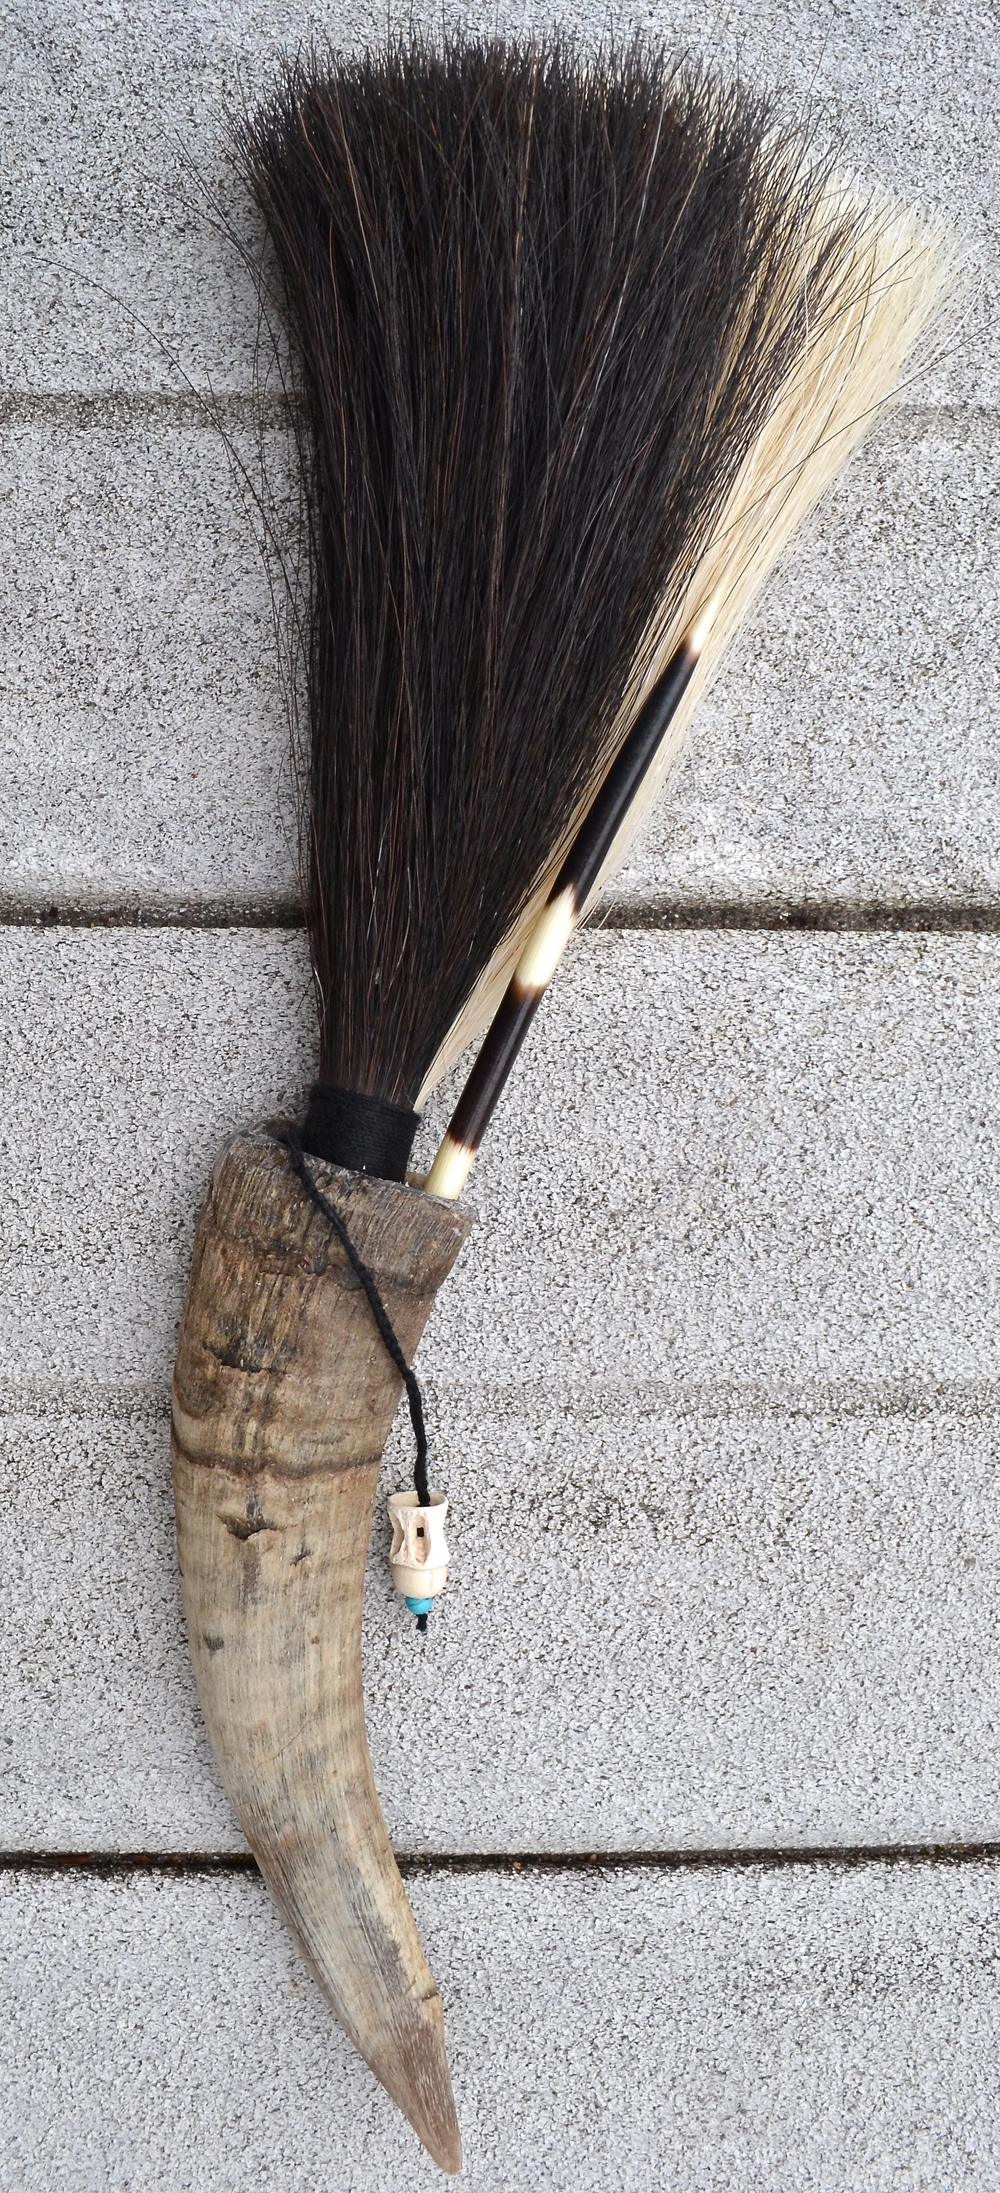 Goat horn, horse hair (black and white), twine, porcupine quill, turquoise bead, wooden bead and Shark vertebrae.  Artist made primal brush for use or display